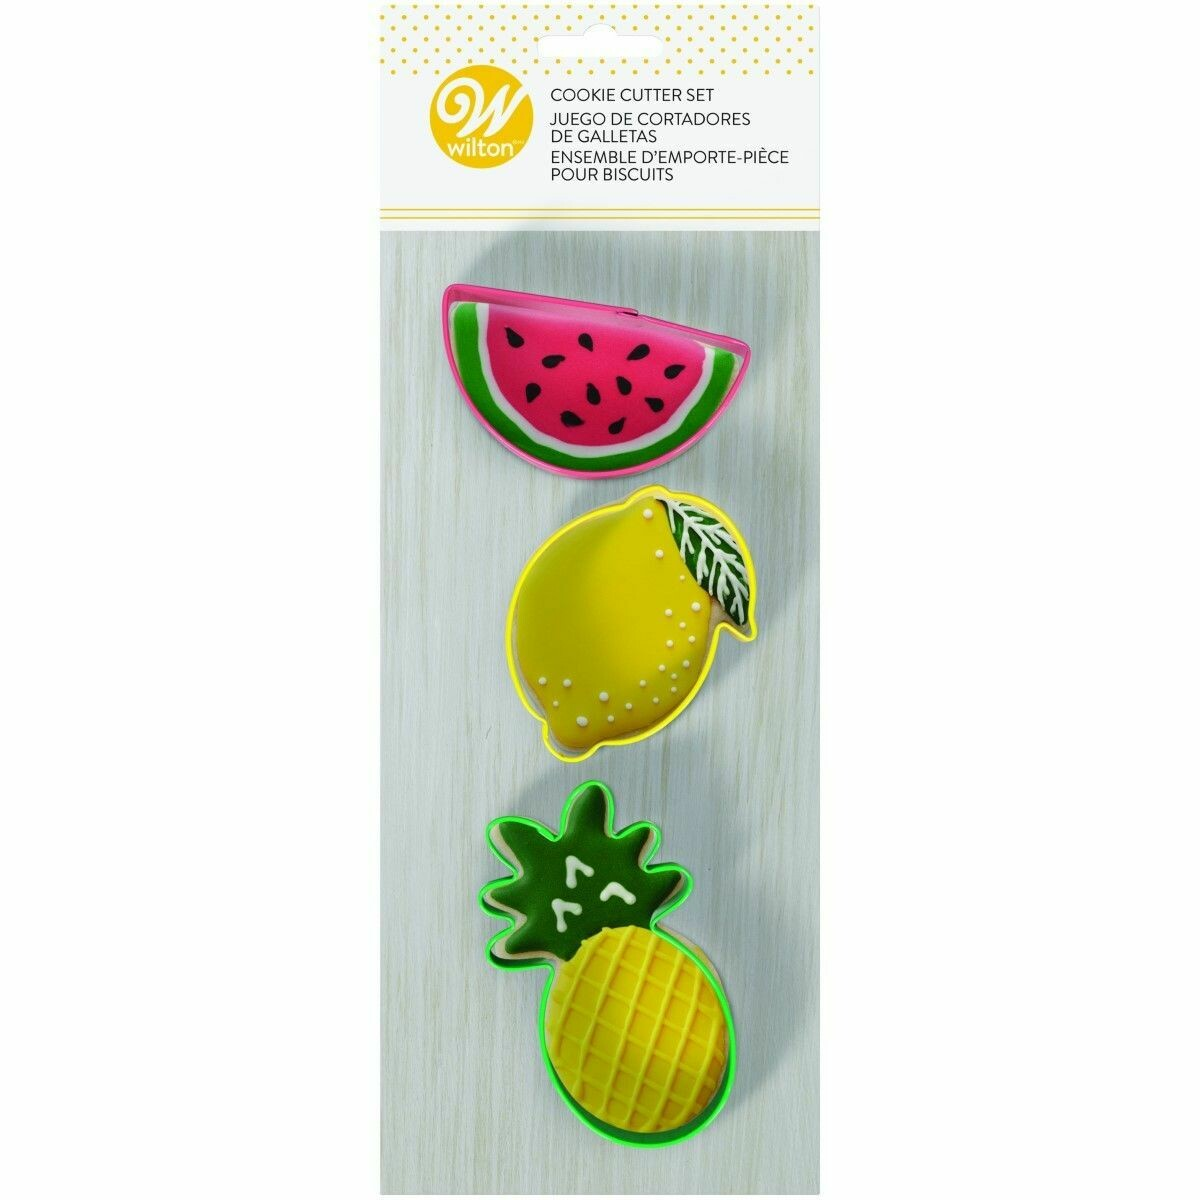 Wilton Cookie Cutter Set of 3 -WATERMELON, LEMON and PINEAPPLE - Σετ 3τεμ Κουπ πατ ΚΑΡΠΟΥΖΙ, ΛΕΜΟΝΙ, ΑΝΑΝΑΣ